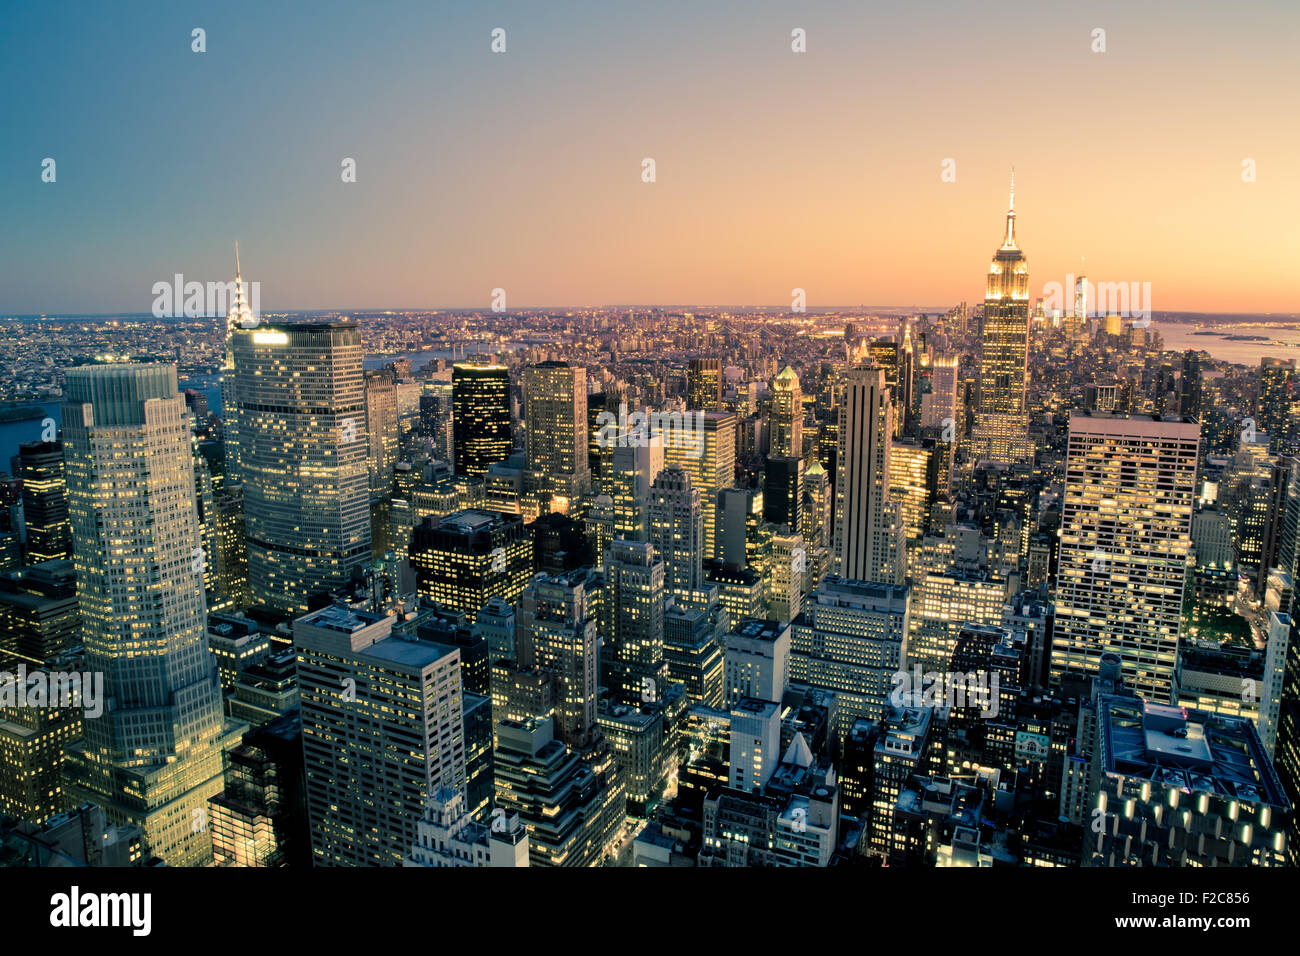 Belle New York Ville Manhattan at sunset Photo Stock